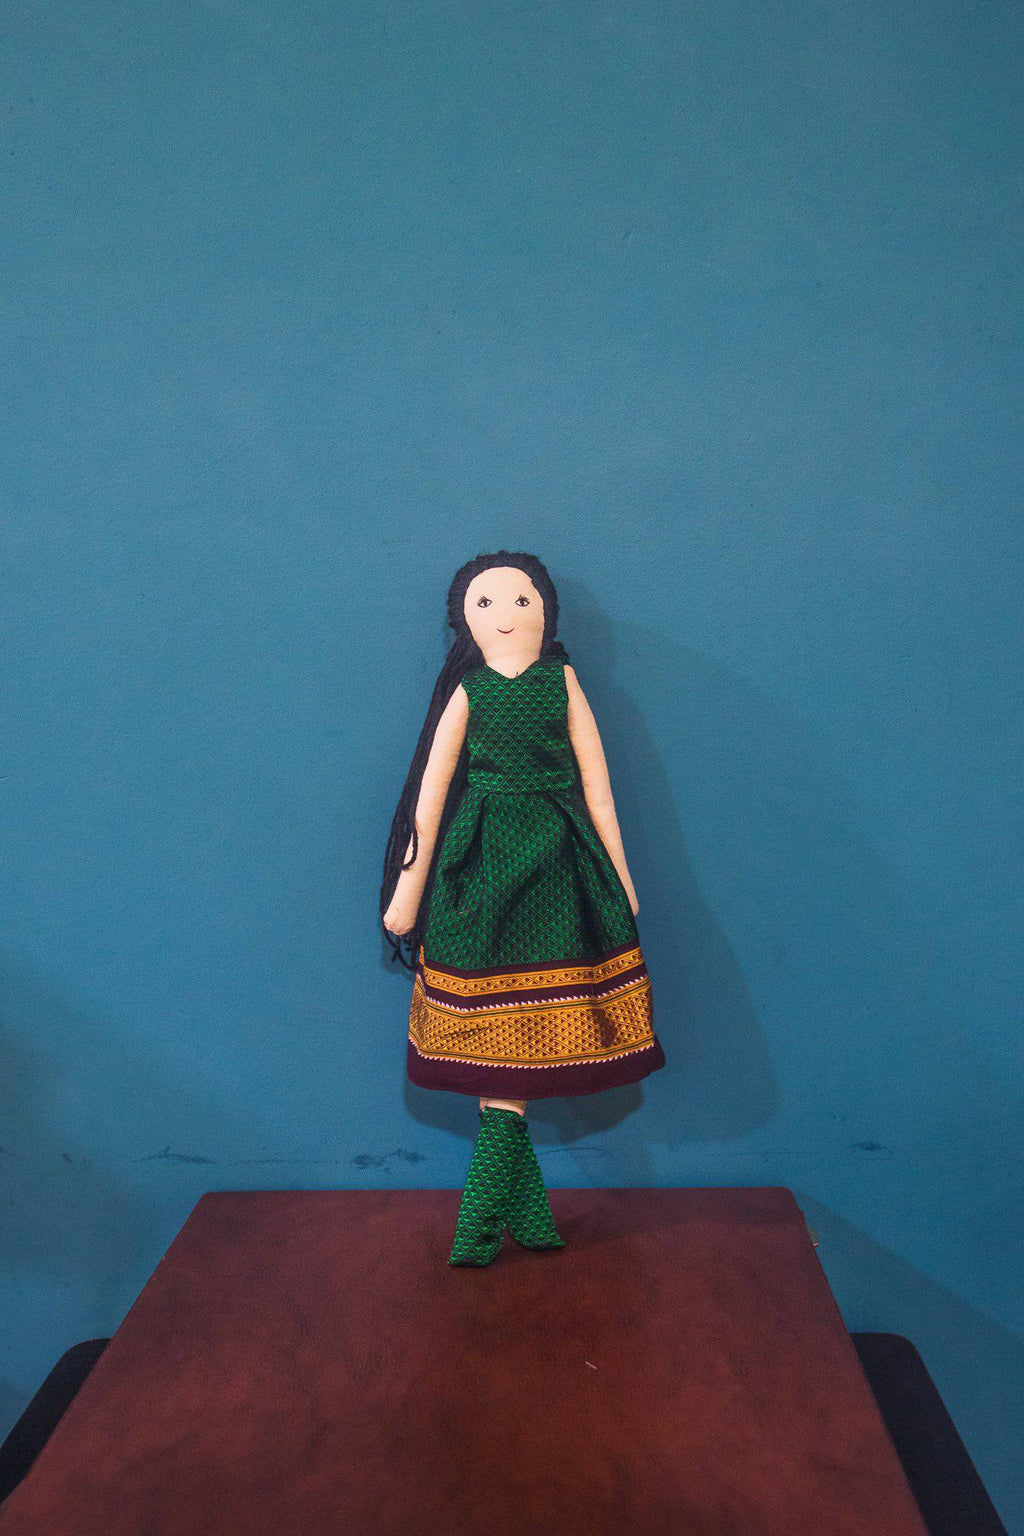 Kids fabric doll with rich green khunn frock - WEAR COURAGE